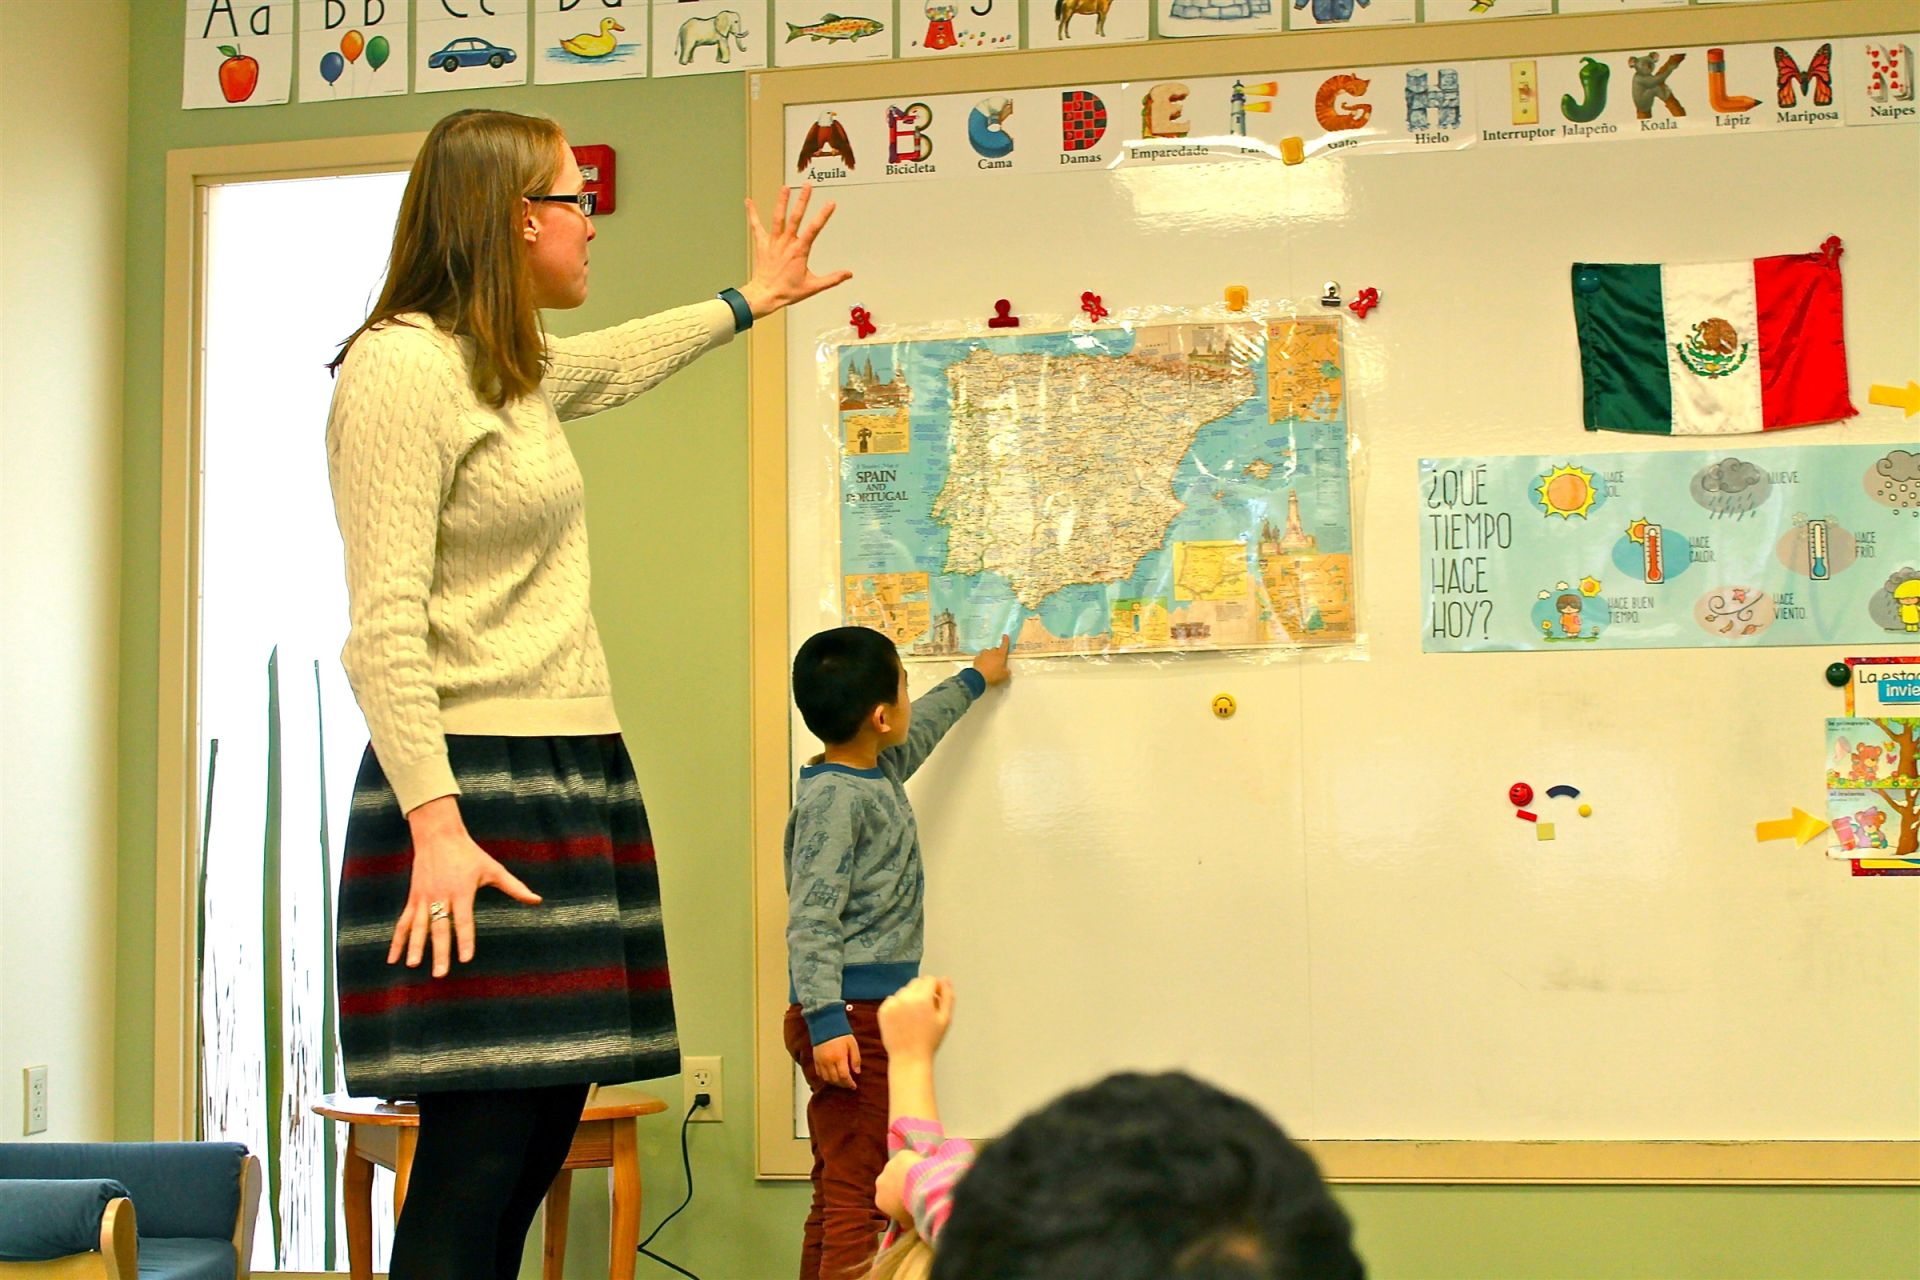 Fay's Primary School World Language program is built around the F.L.E.X. (Foreign Language Experience) approach. Beginning in Pre-K, students spend the first half of the year learning Spanish and the second half of the year learning French. They learn basic greetings and common expressions as well as basic vocabulary for numbers, days of the week, body parts, and shapes. Students also learn about the cultural traditions and celebrations of Hispanic and Francophone countries around the world.